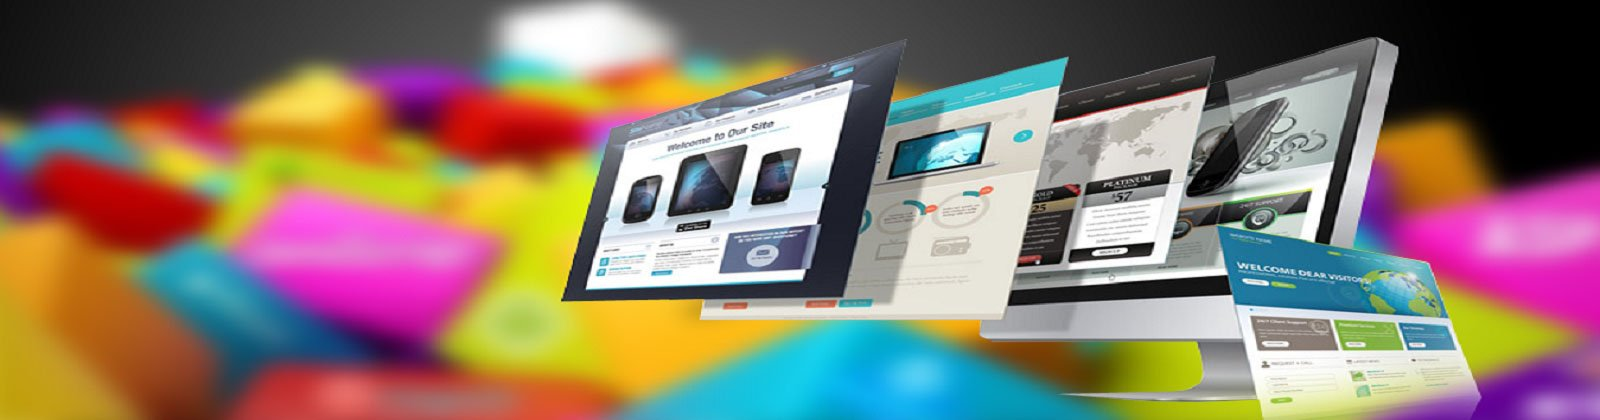 web-design-trichy